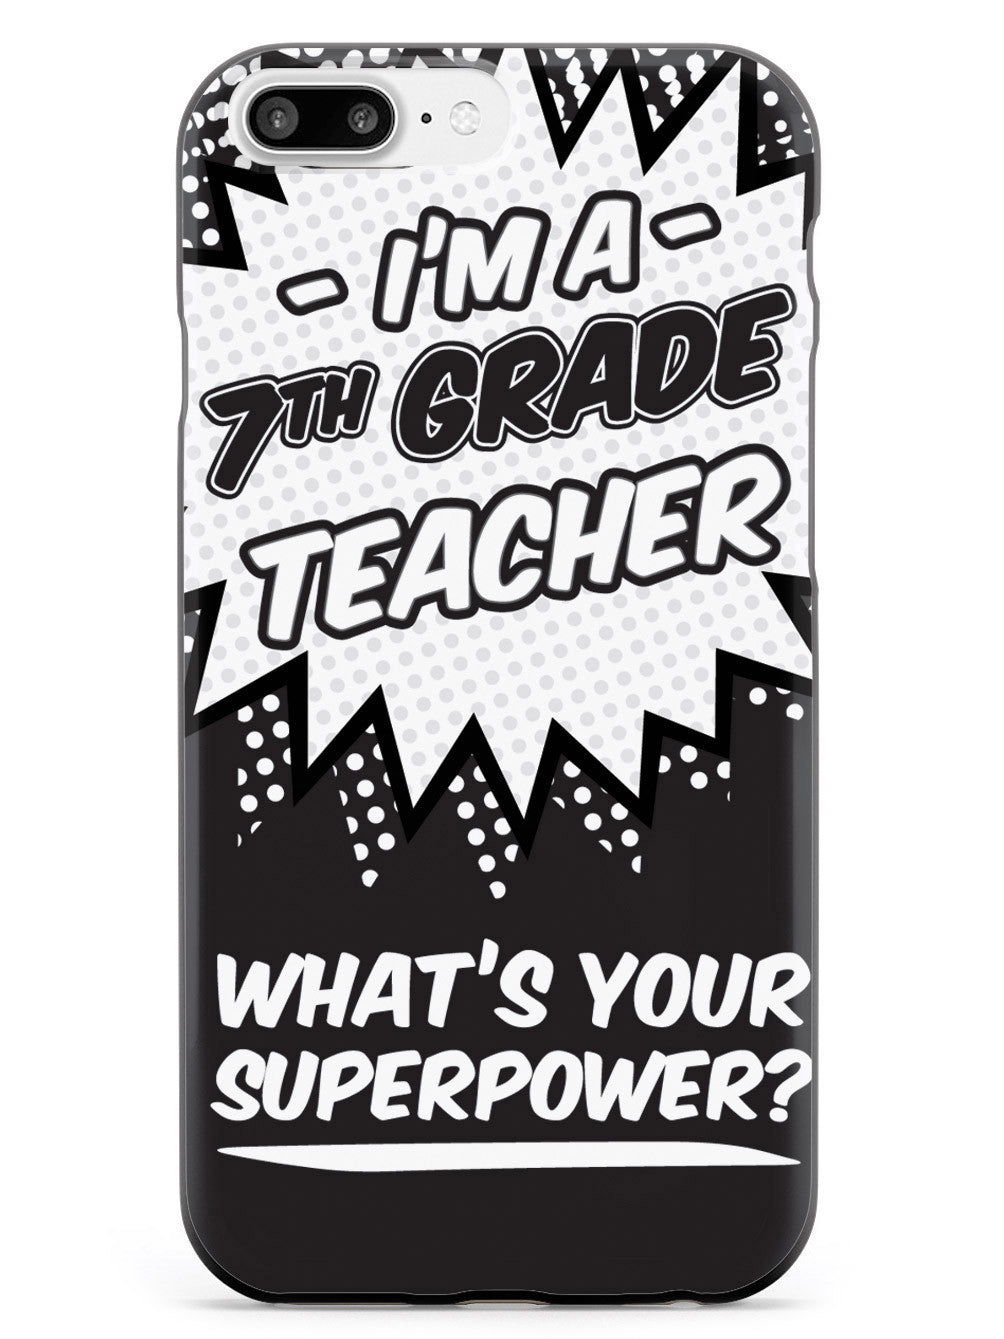 7th Grade Teacher - What's Your Superpower? Case